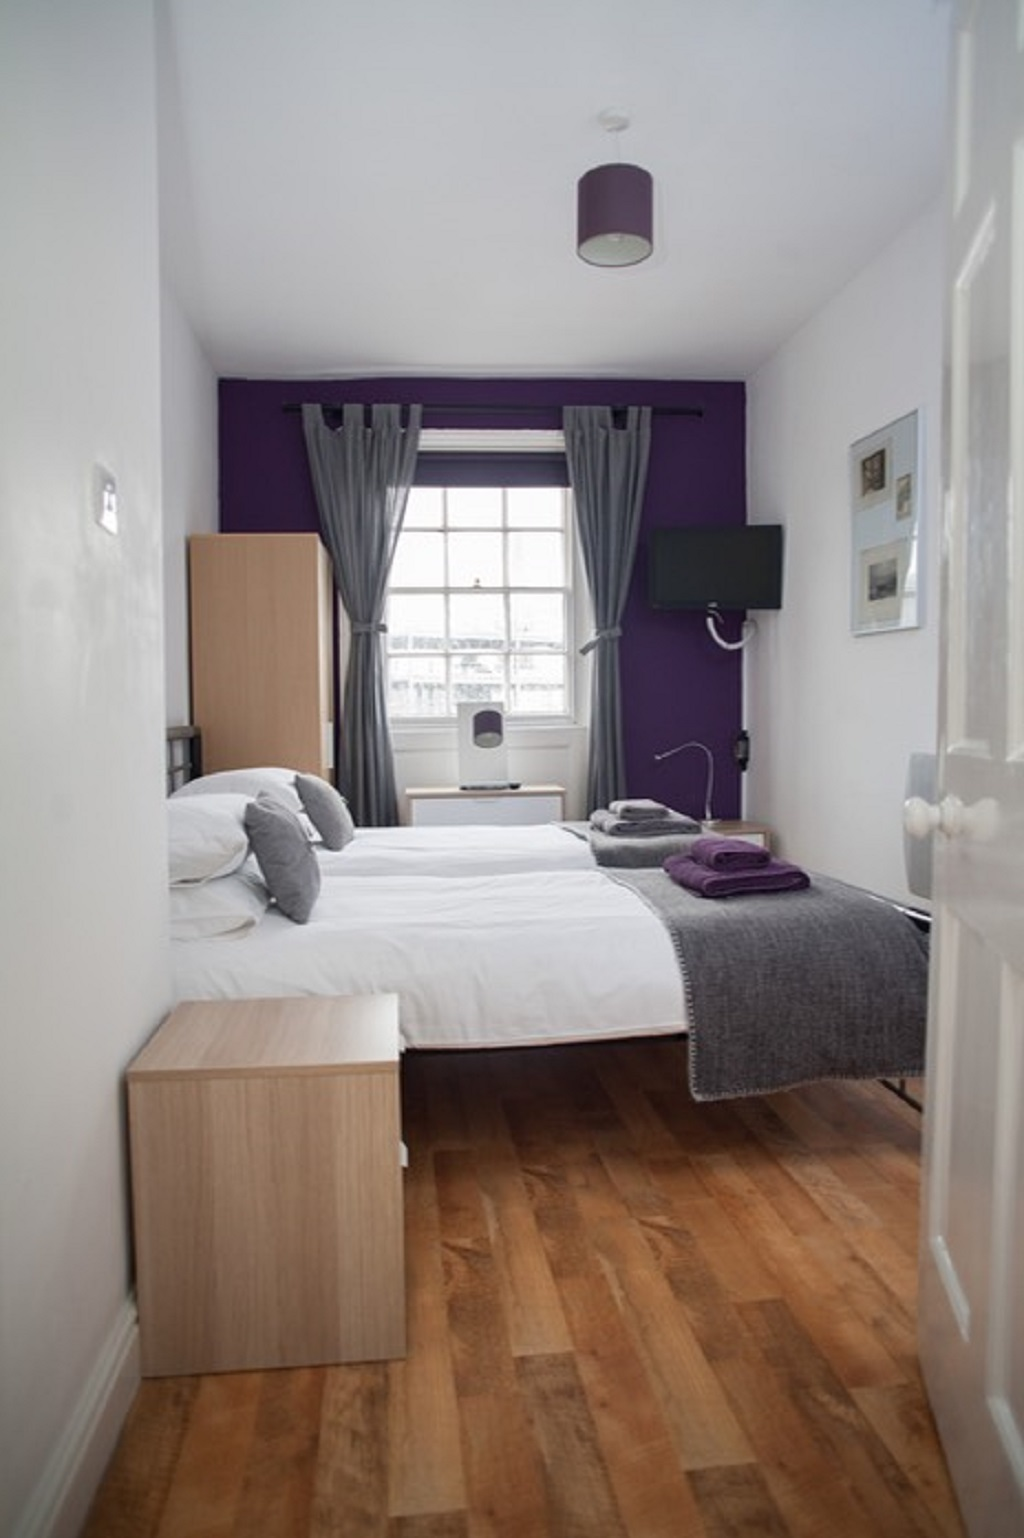 Grey bedding at Quire Court Apartment, Centre, Gloucester - Citybase Apartments